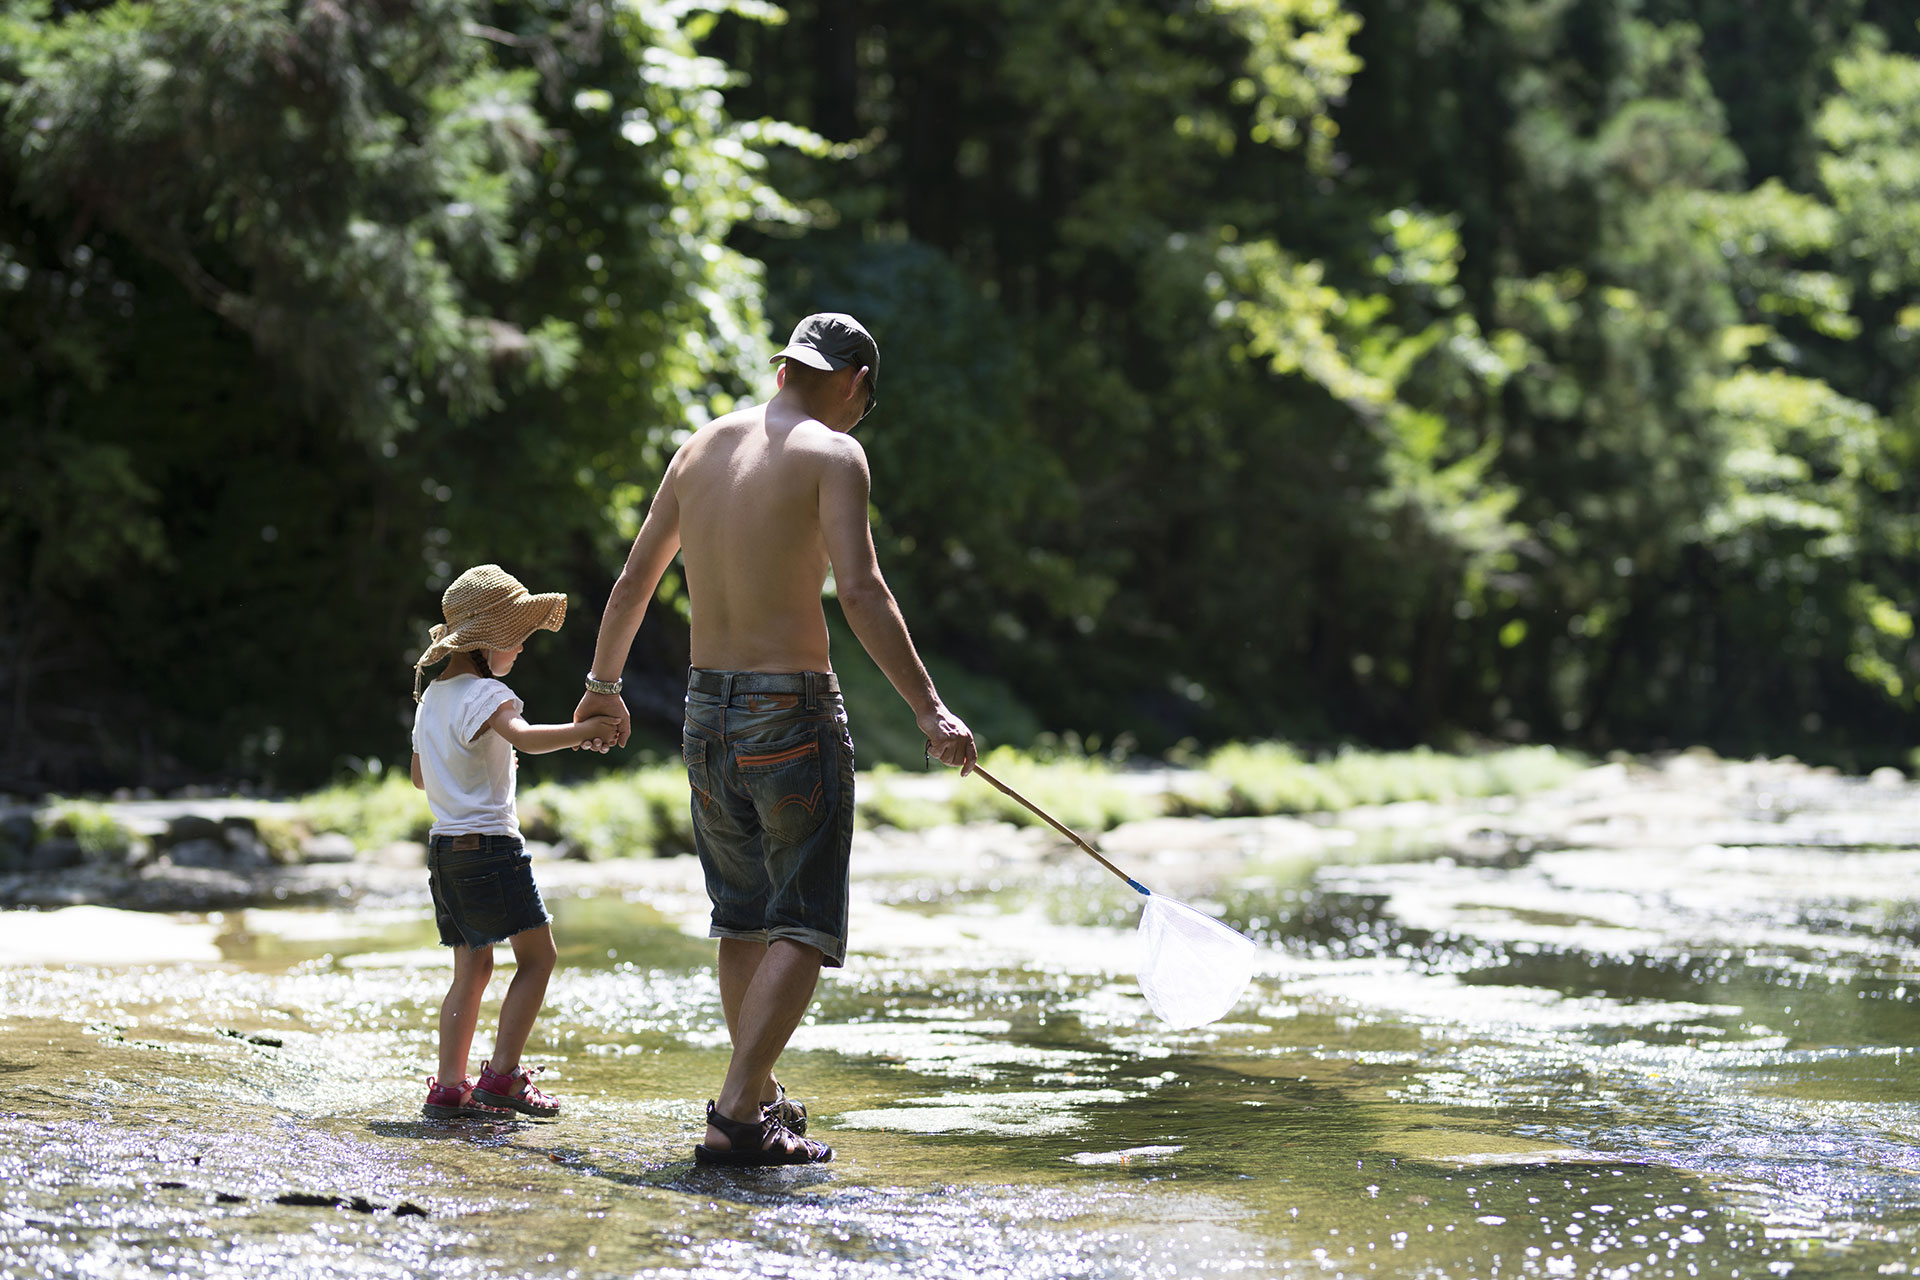 Dad and Daughter Playing in River; Courtesy of Purino/Shutterstock.com